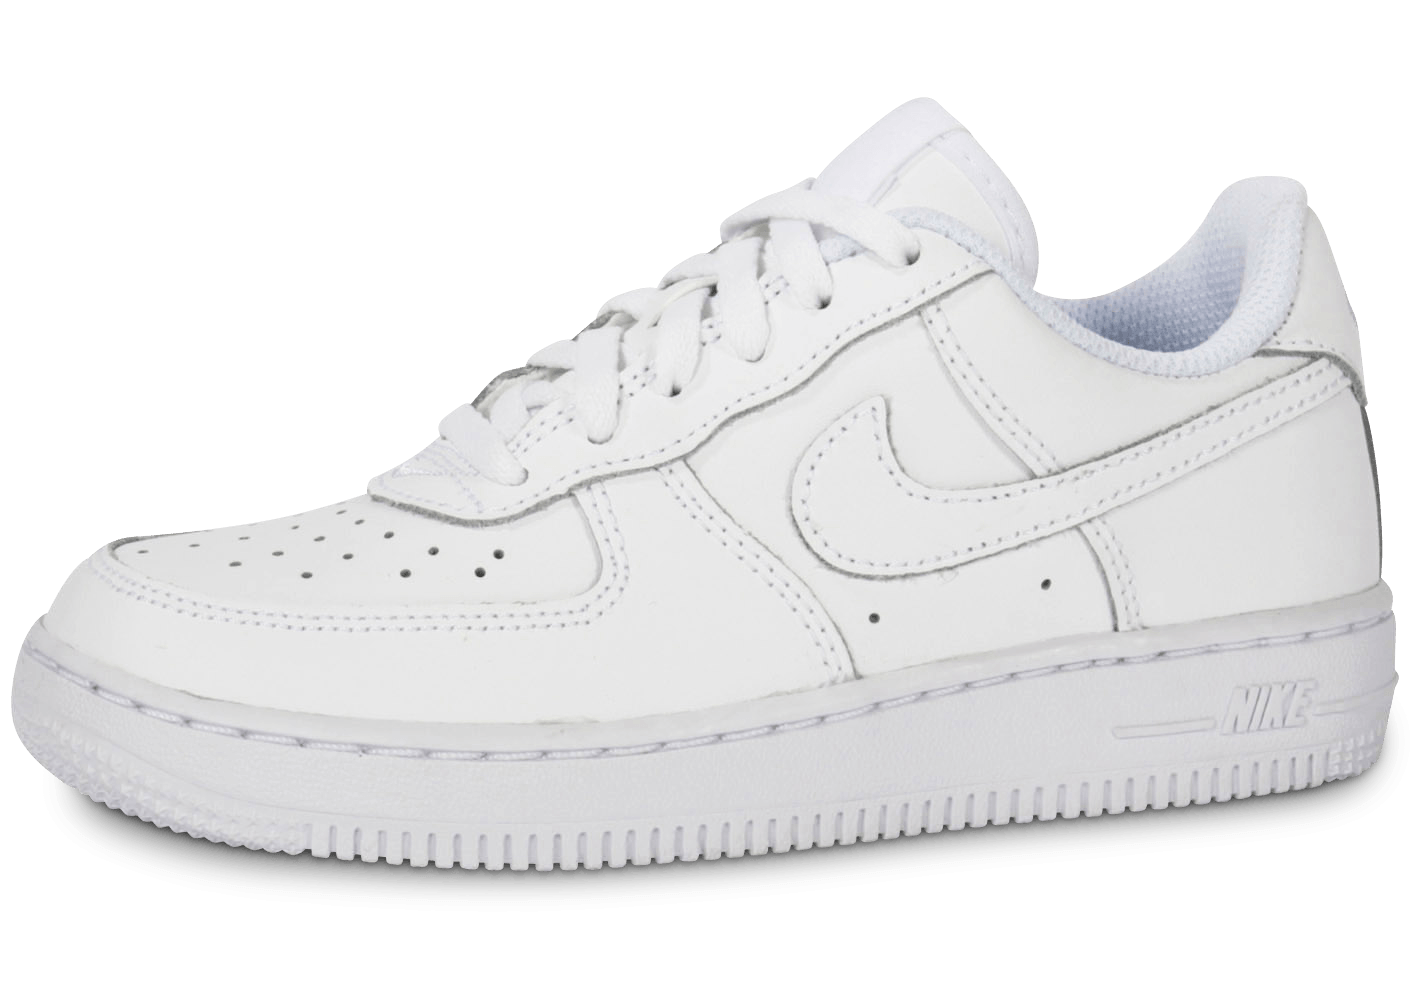 low priced d0016 feb0f Nike Air Force 1 Enfant Blanche - Chaussures Enfant - Chausport